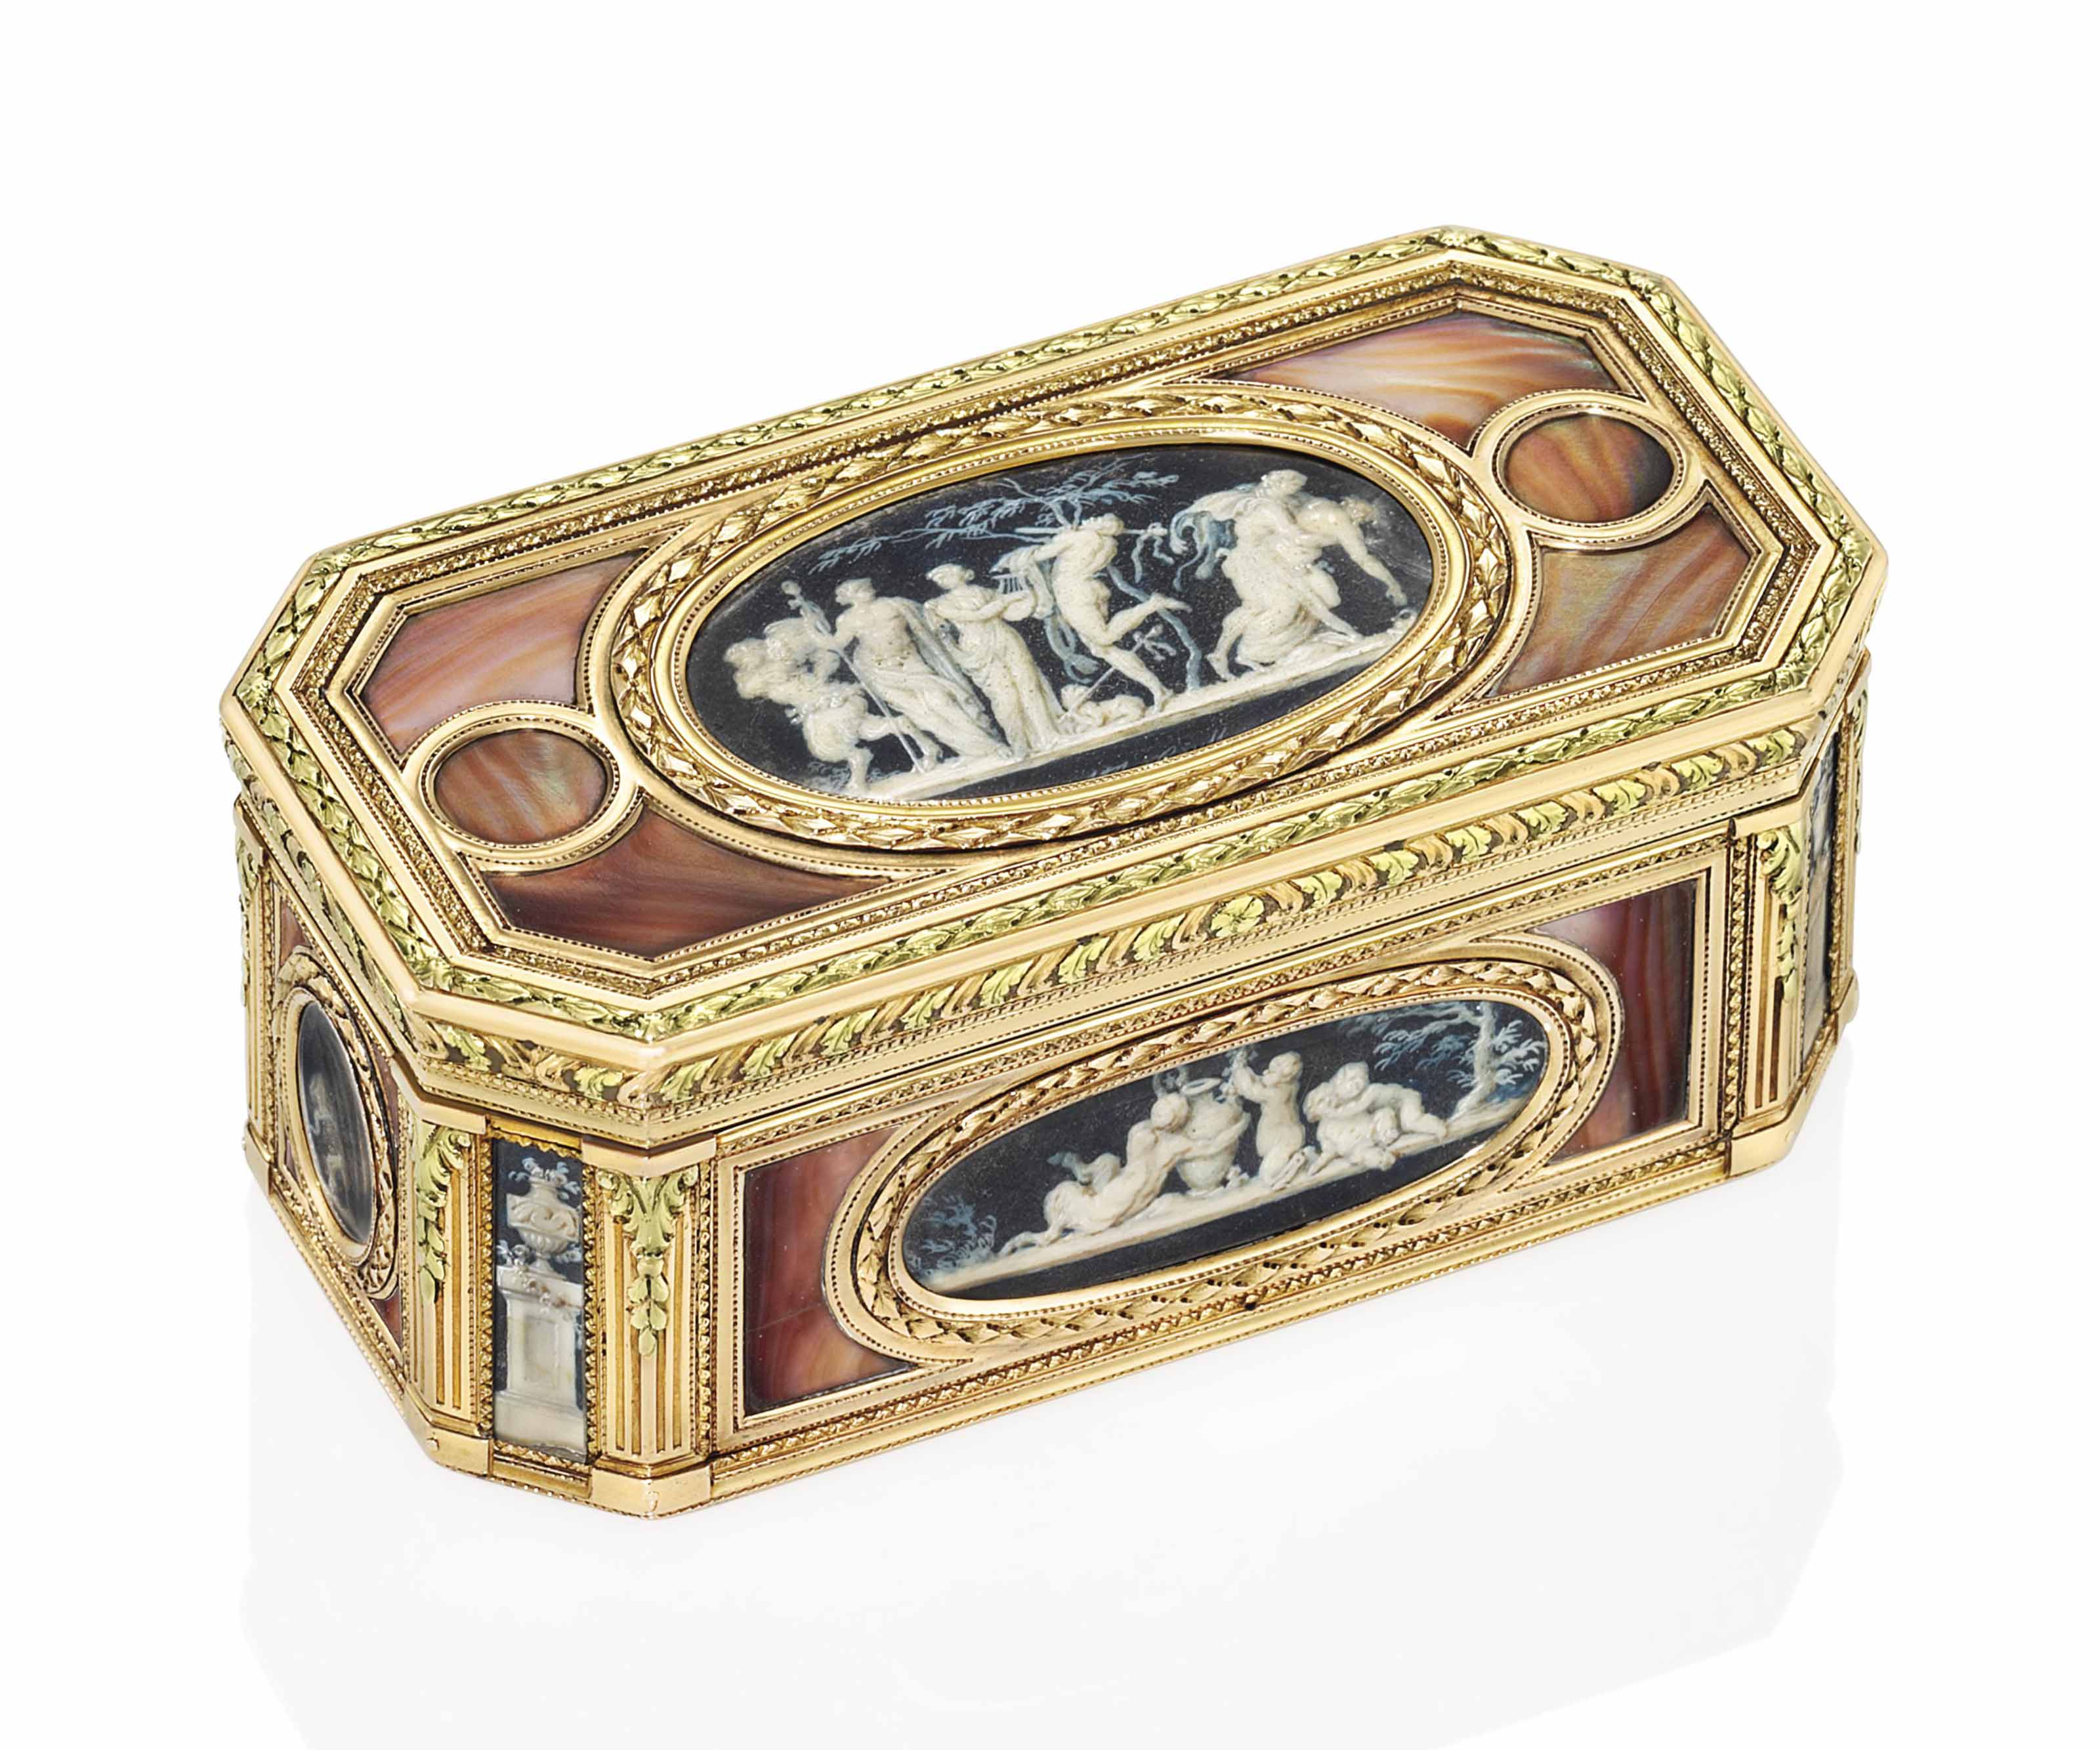 AN IMPORTANT LOUIS XV VARI-COLOUR GOLD-MOUNTED AND COLOURED SHELL BOÎTE-A-MINIATURES